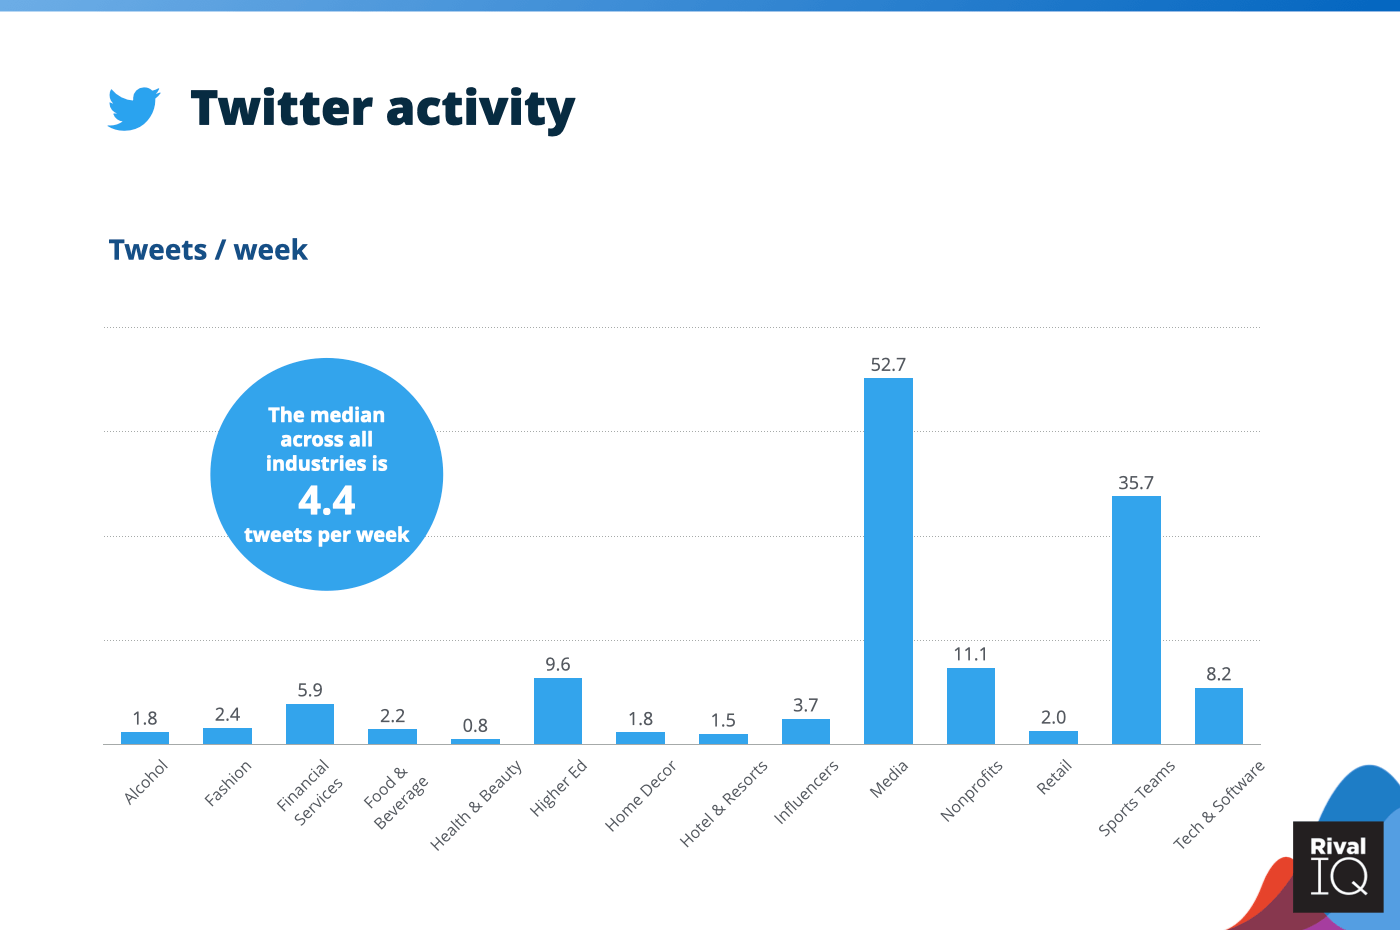 Chart of social media benchmarks for Twitter tweets per week, all industries